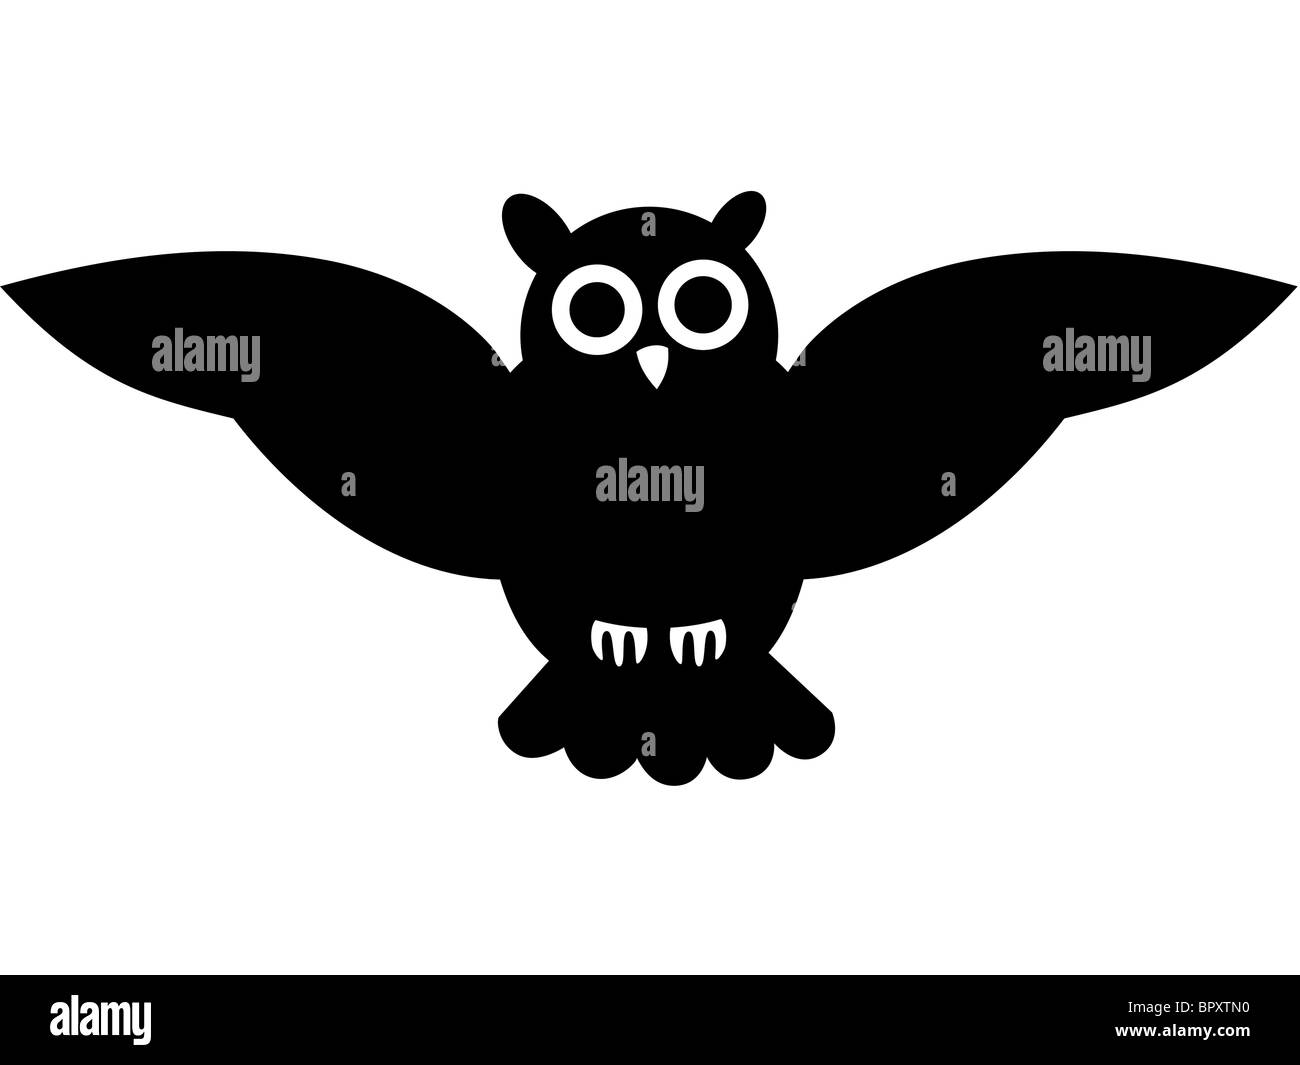 dessin en noir et blanc d 39 un hibou banque d 39 images photo stock 31322956 alamy. Black Bedroom Furniture Sets. Home Design Ideas